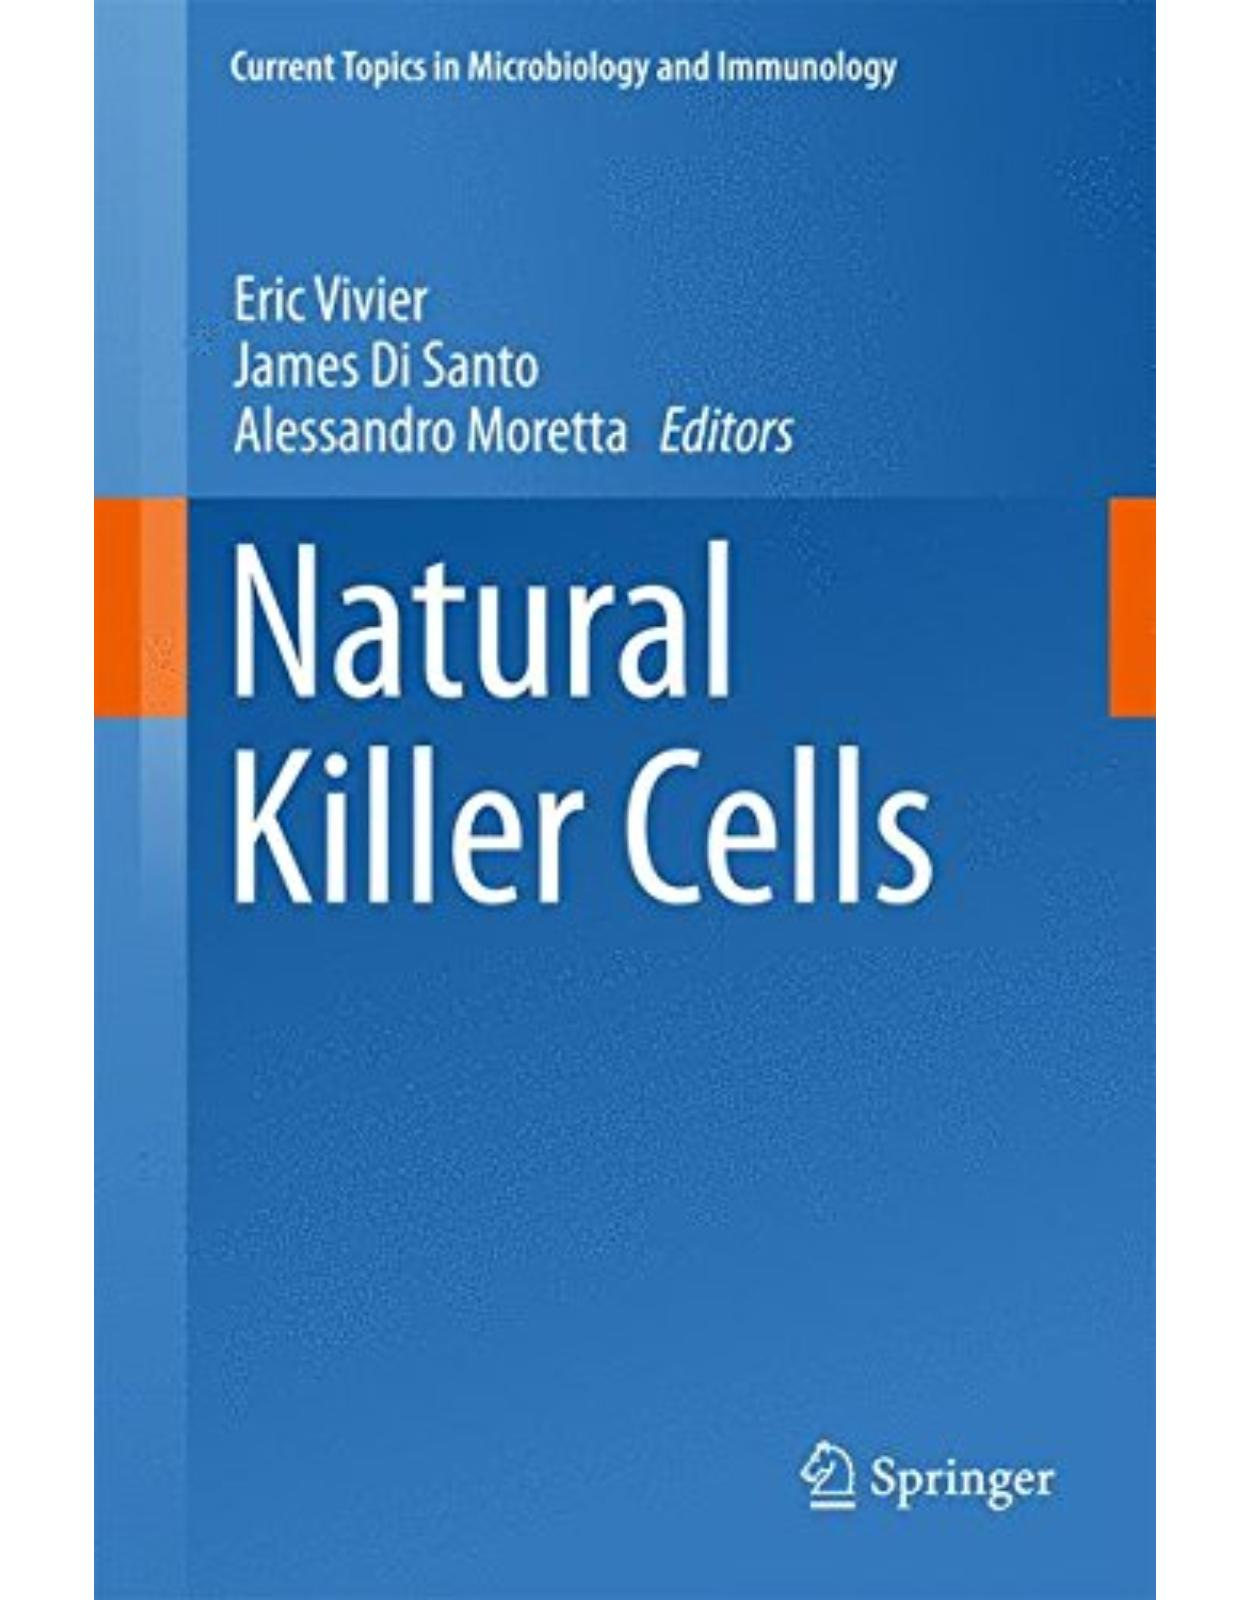 Natural Killer Cells (Current Topics in Microbiology and Immunology)